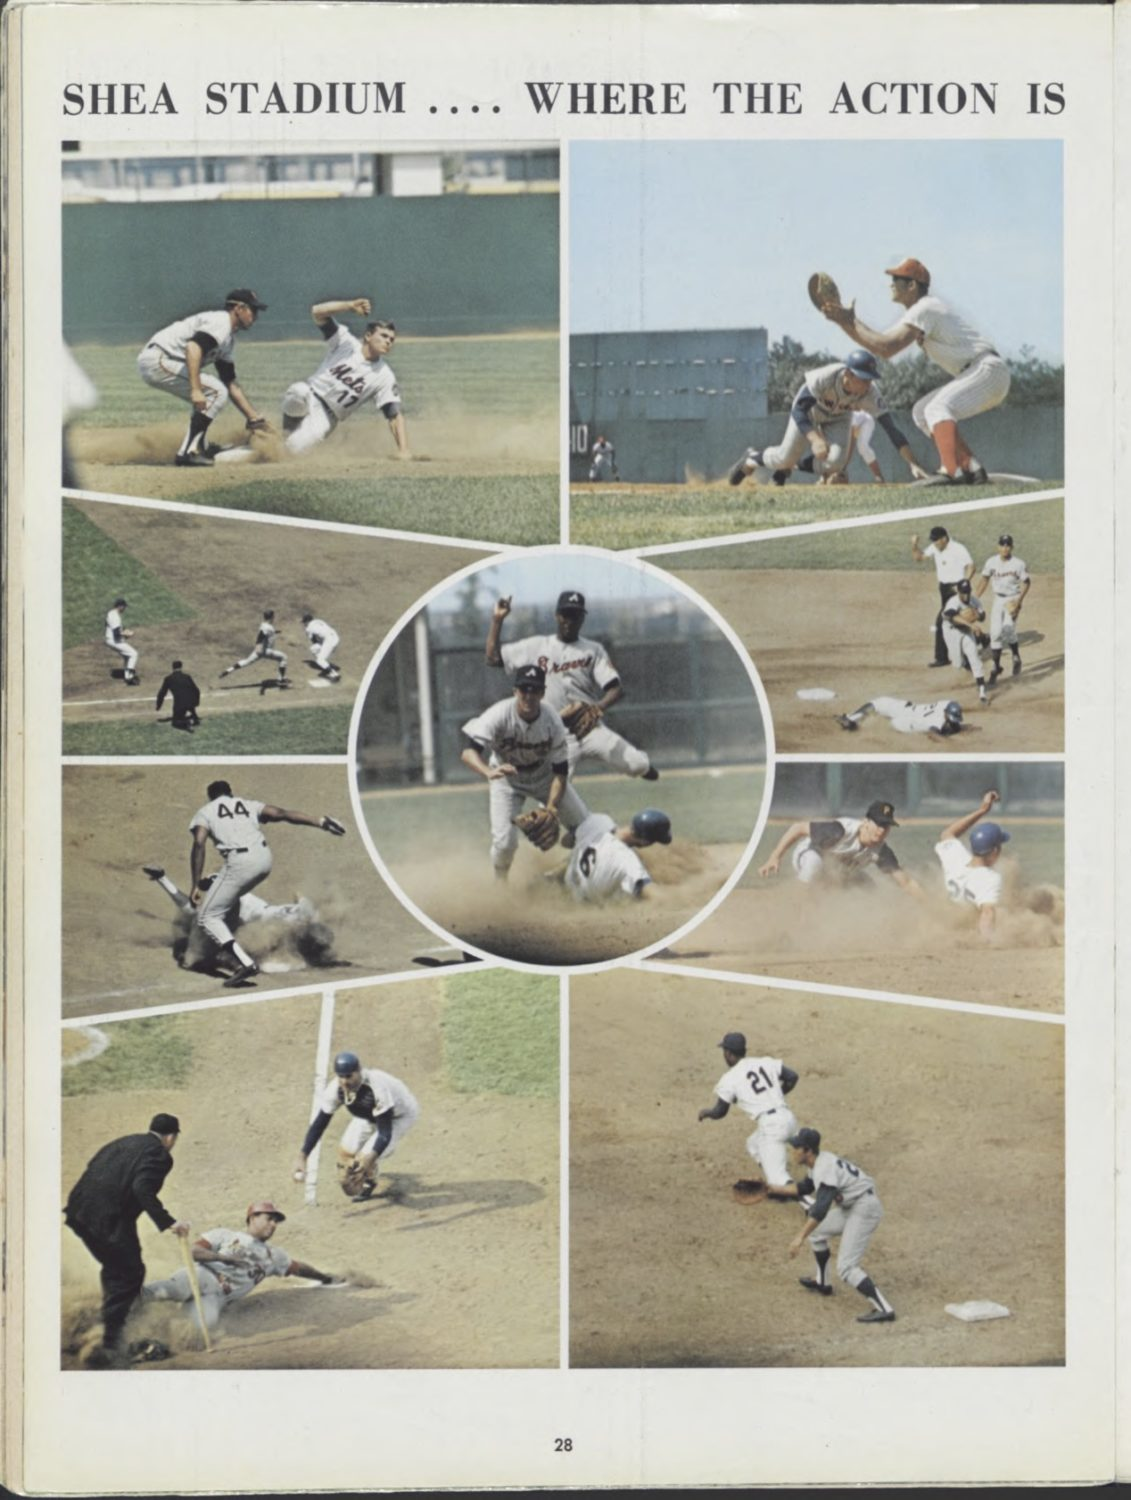 1969 Mets Yearbook Page of Action at Shea